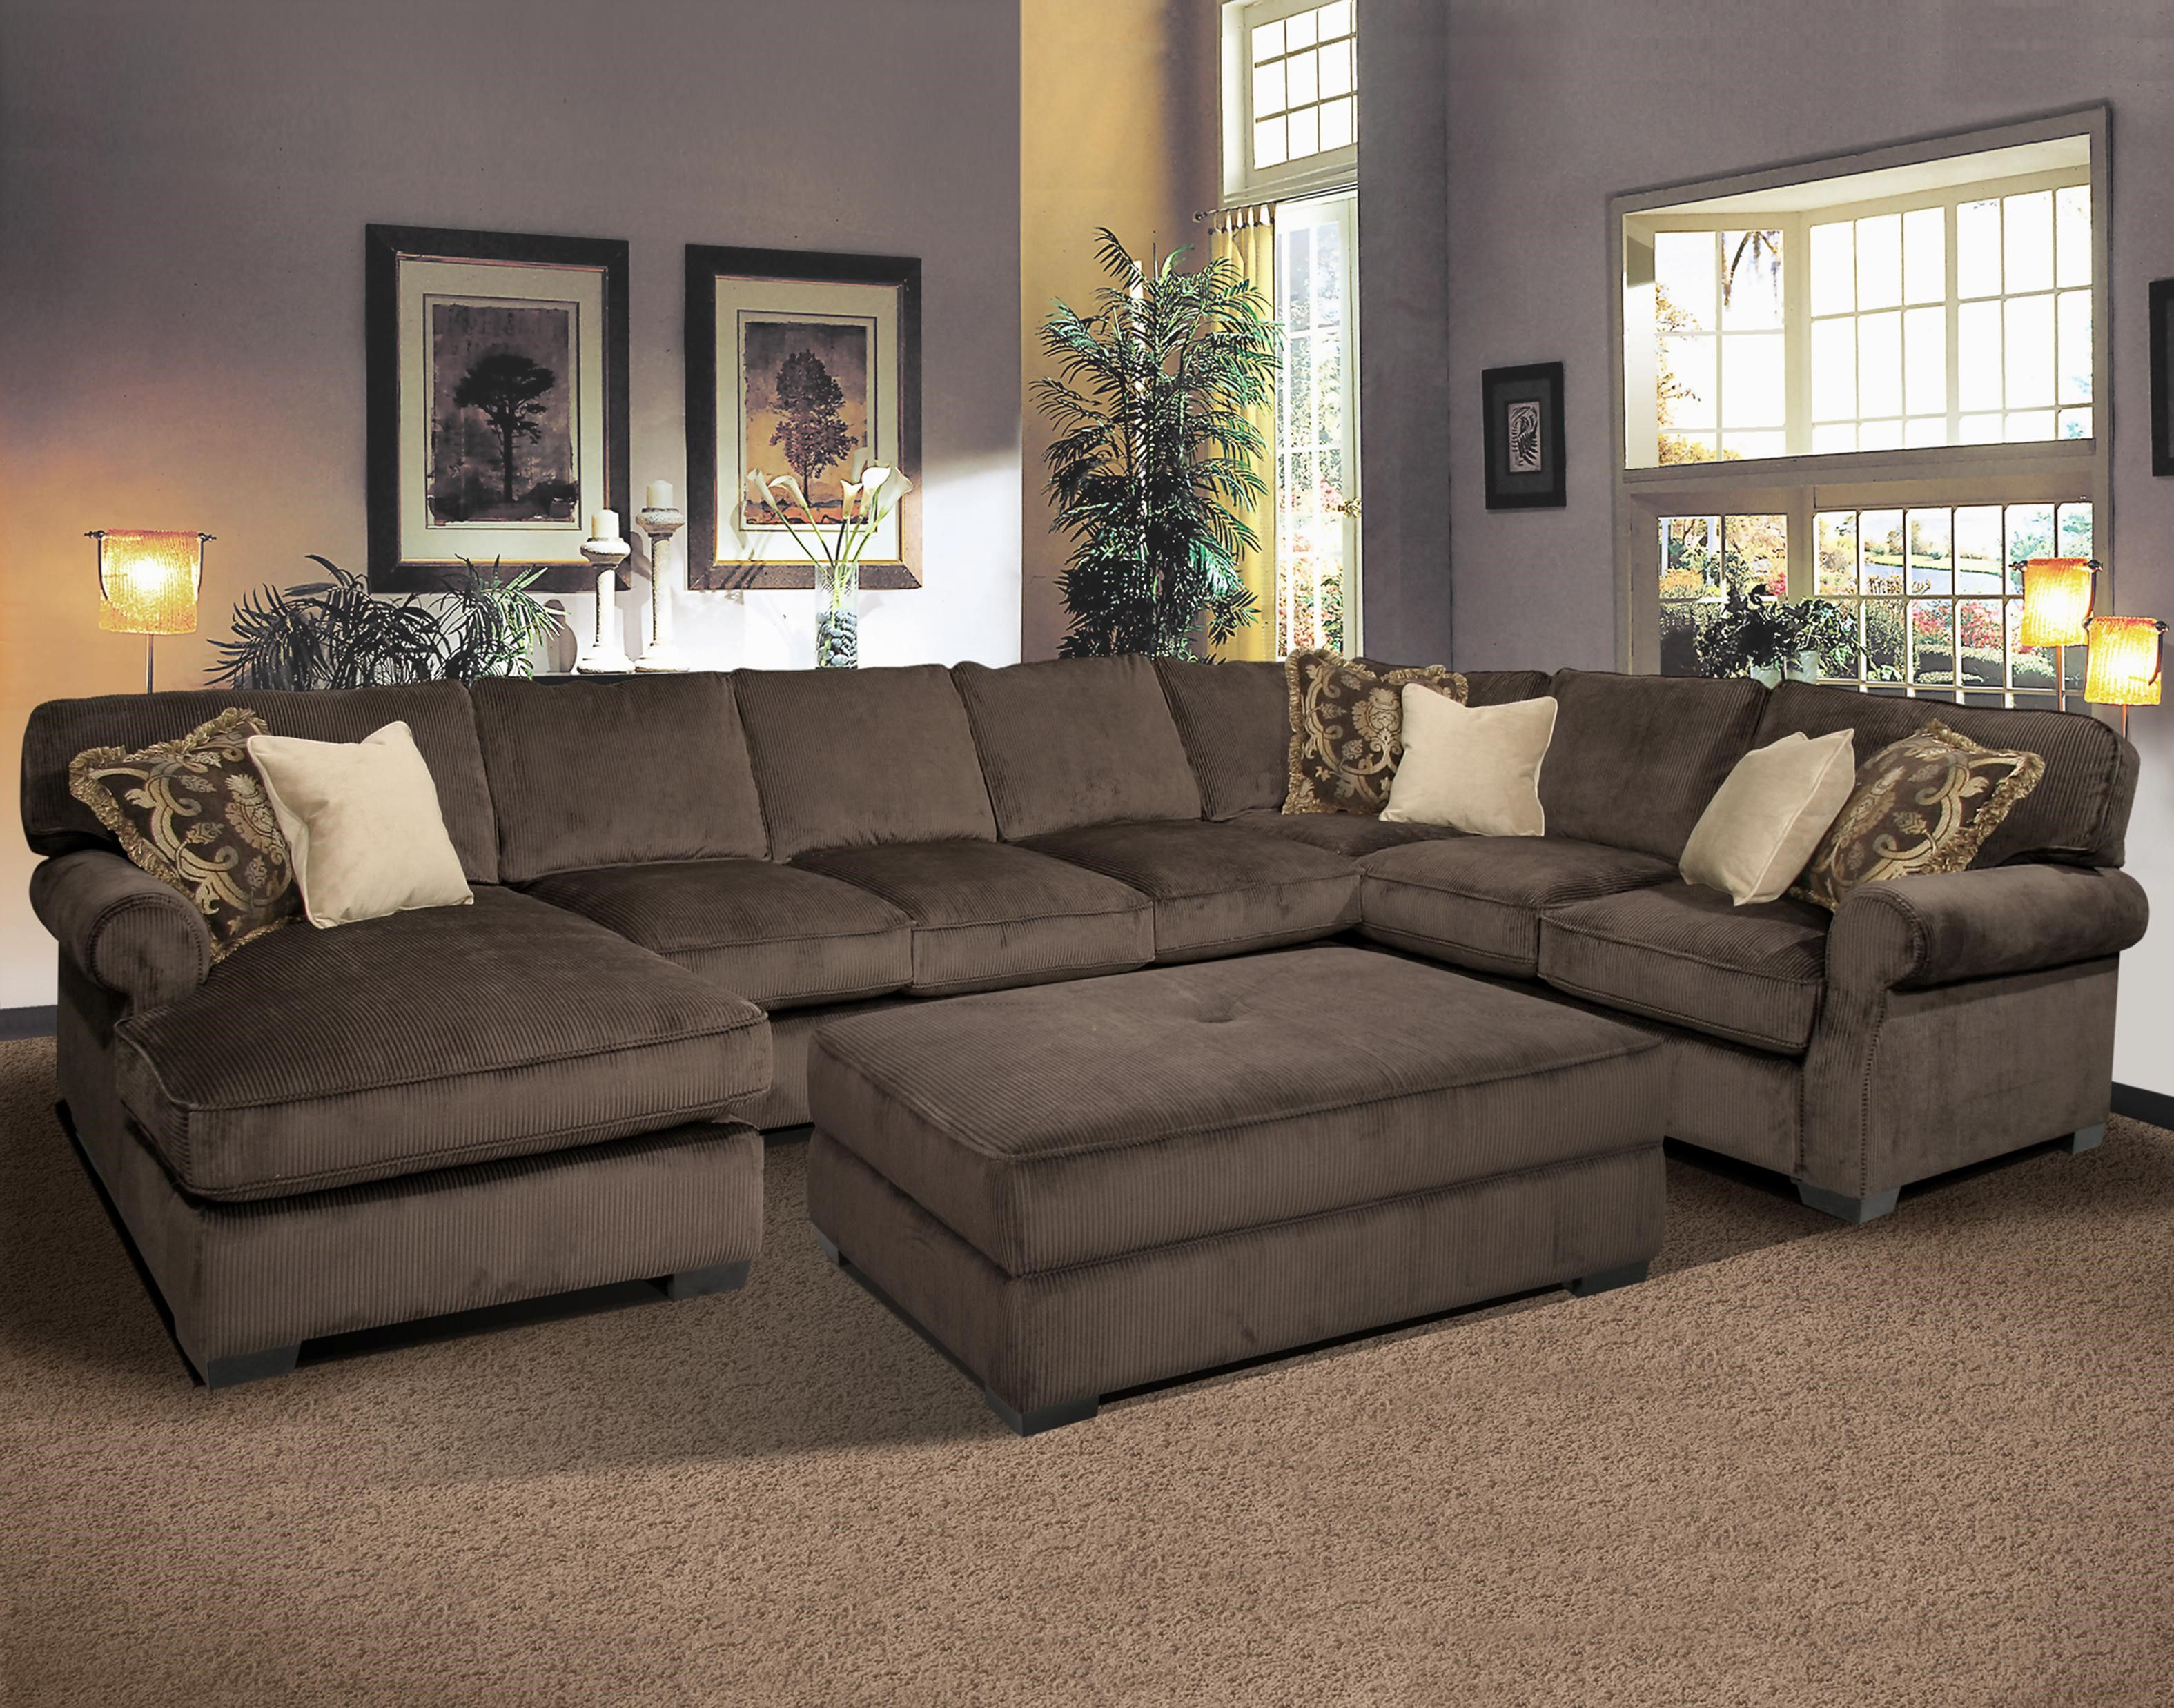 Exceptionnel Comfortable Living Room Sofas Design With Elegant Overstuffed Couches:  Overstuffed Couches | Couches Sales | Goose Down Sofas Sale